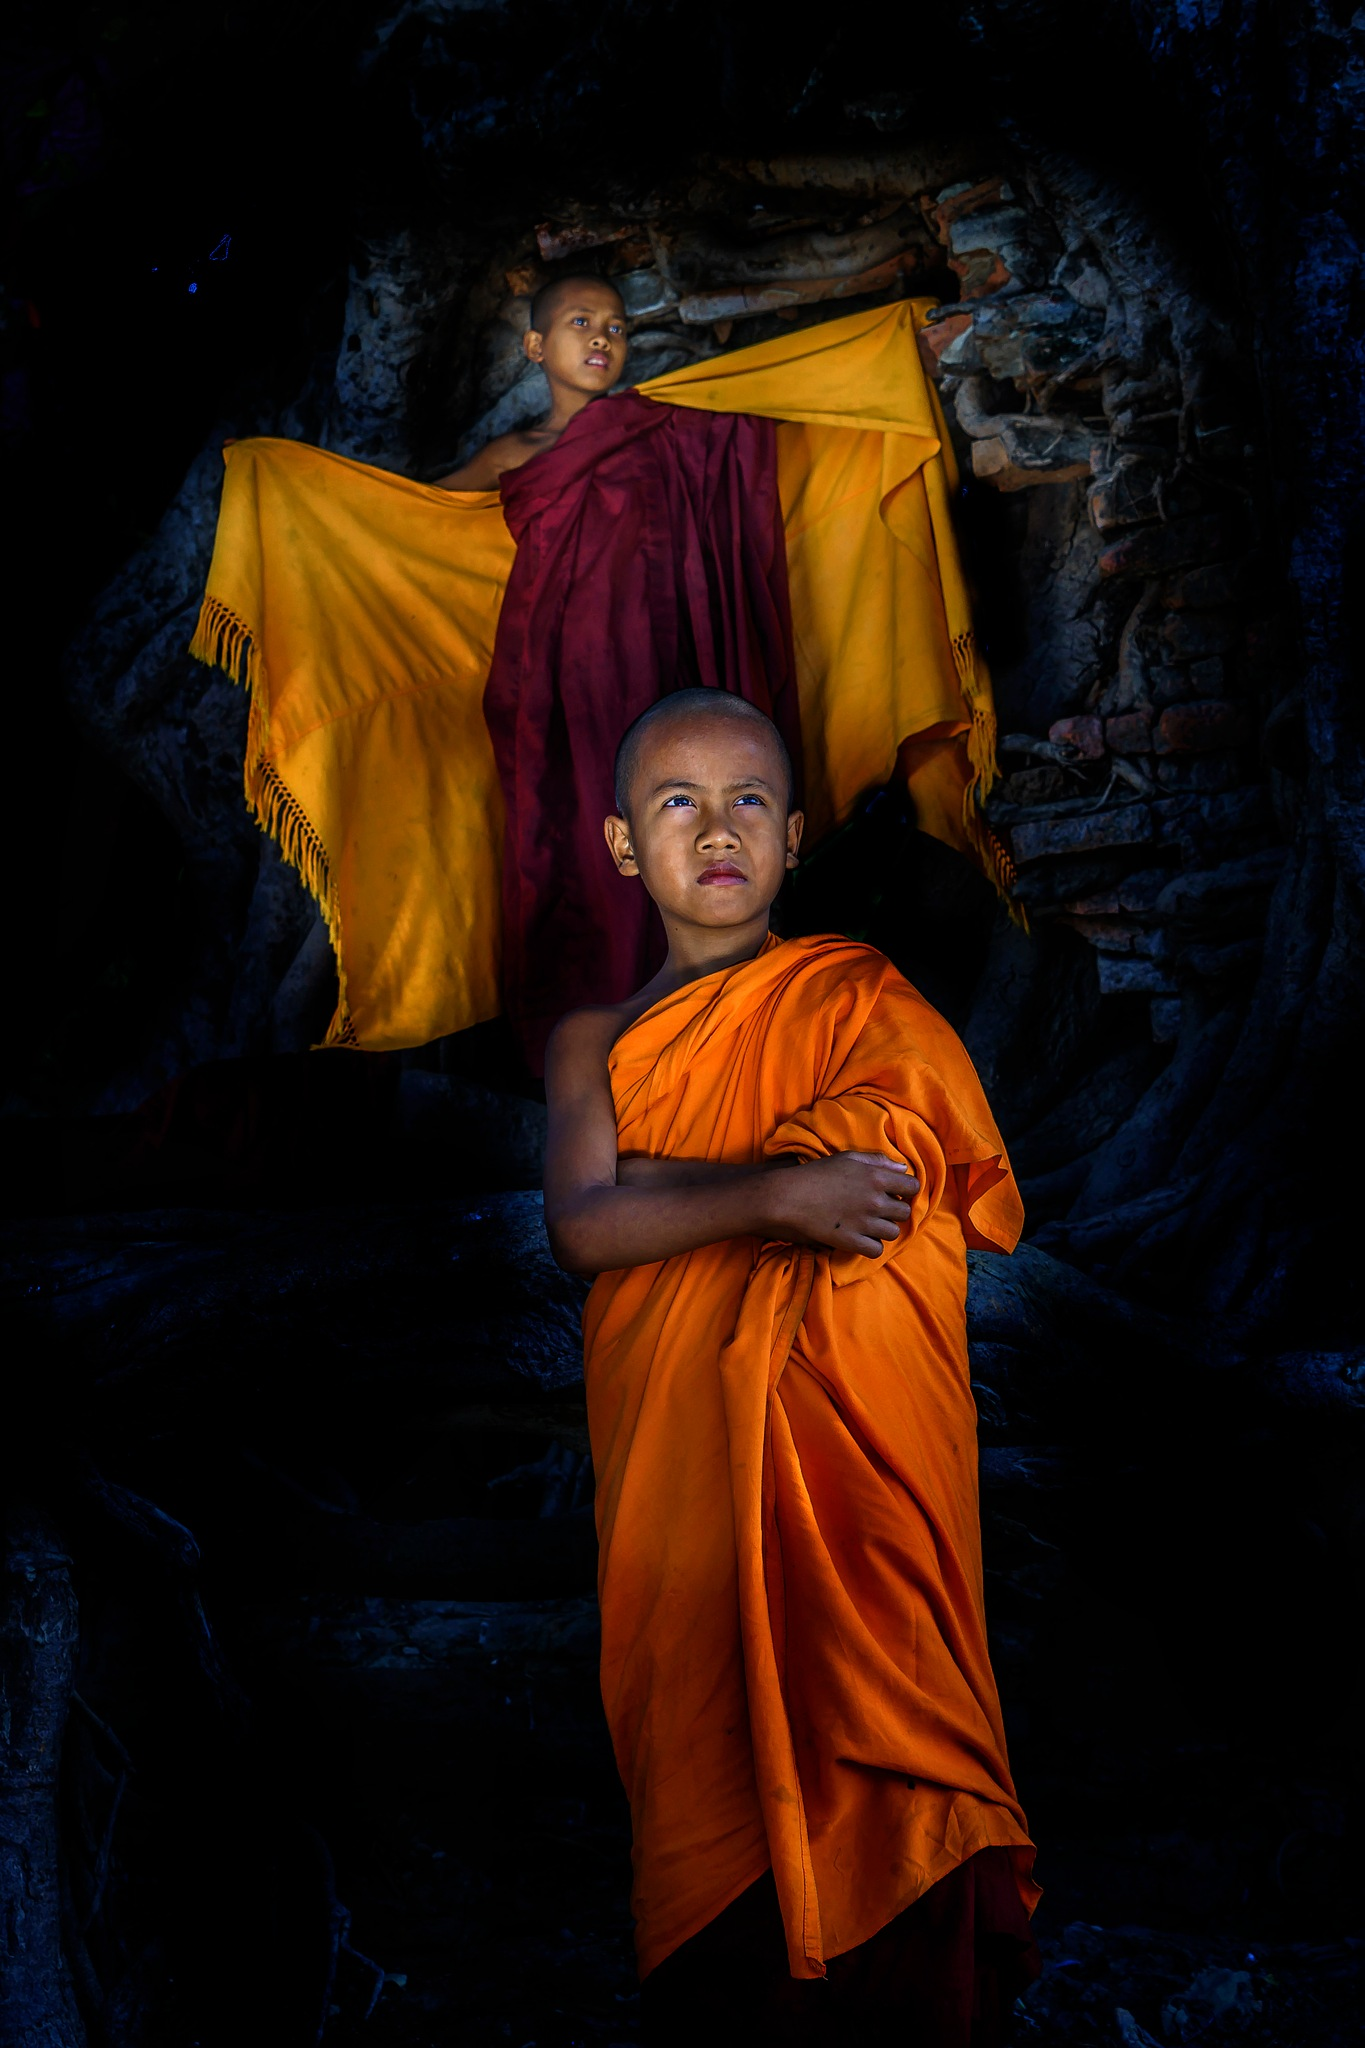 The Monks of Burma(Myanmar) by Htet Aung